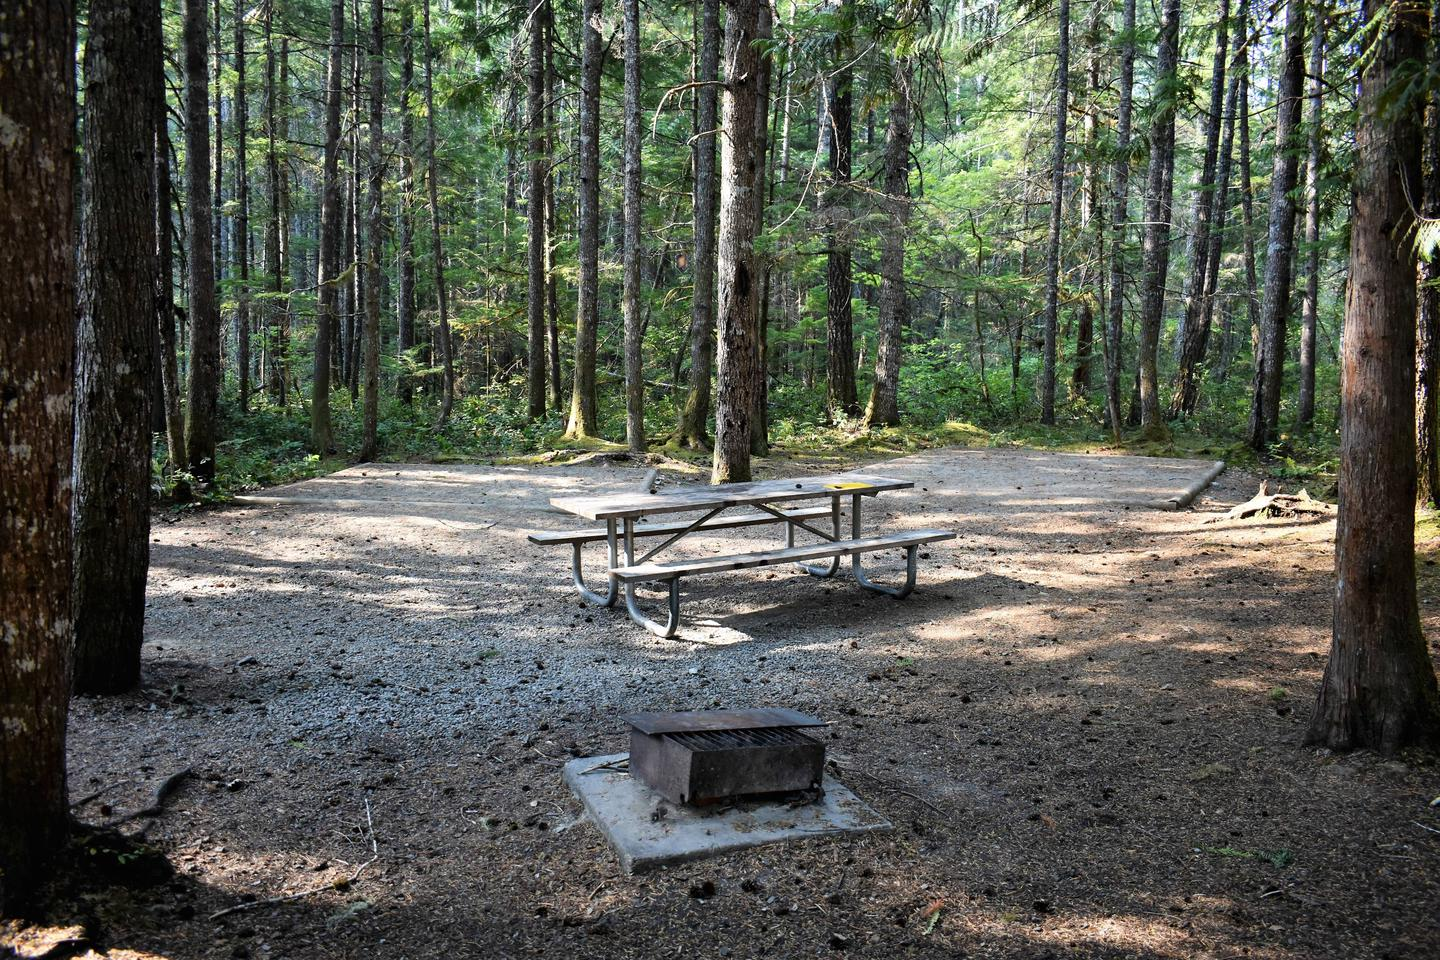 Tent pads, picnic table, and fire ringView of campsite